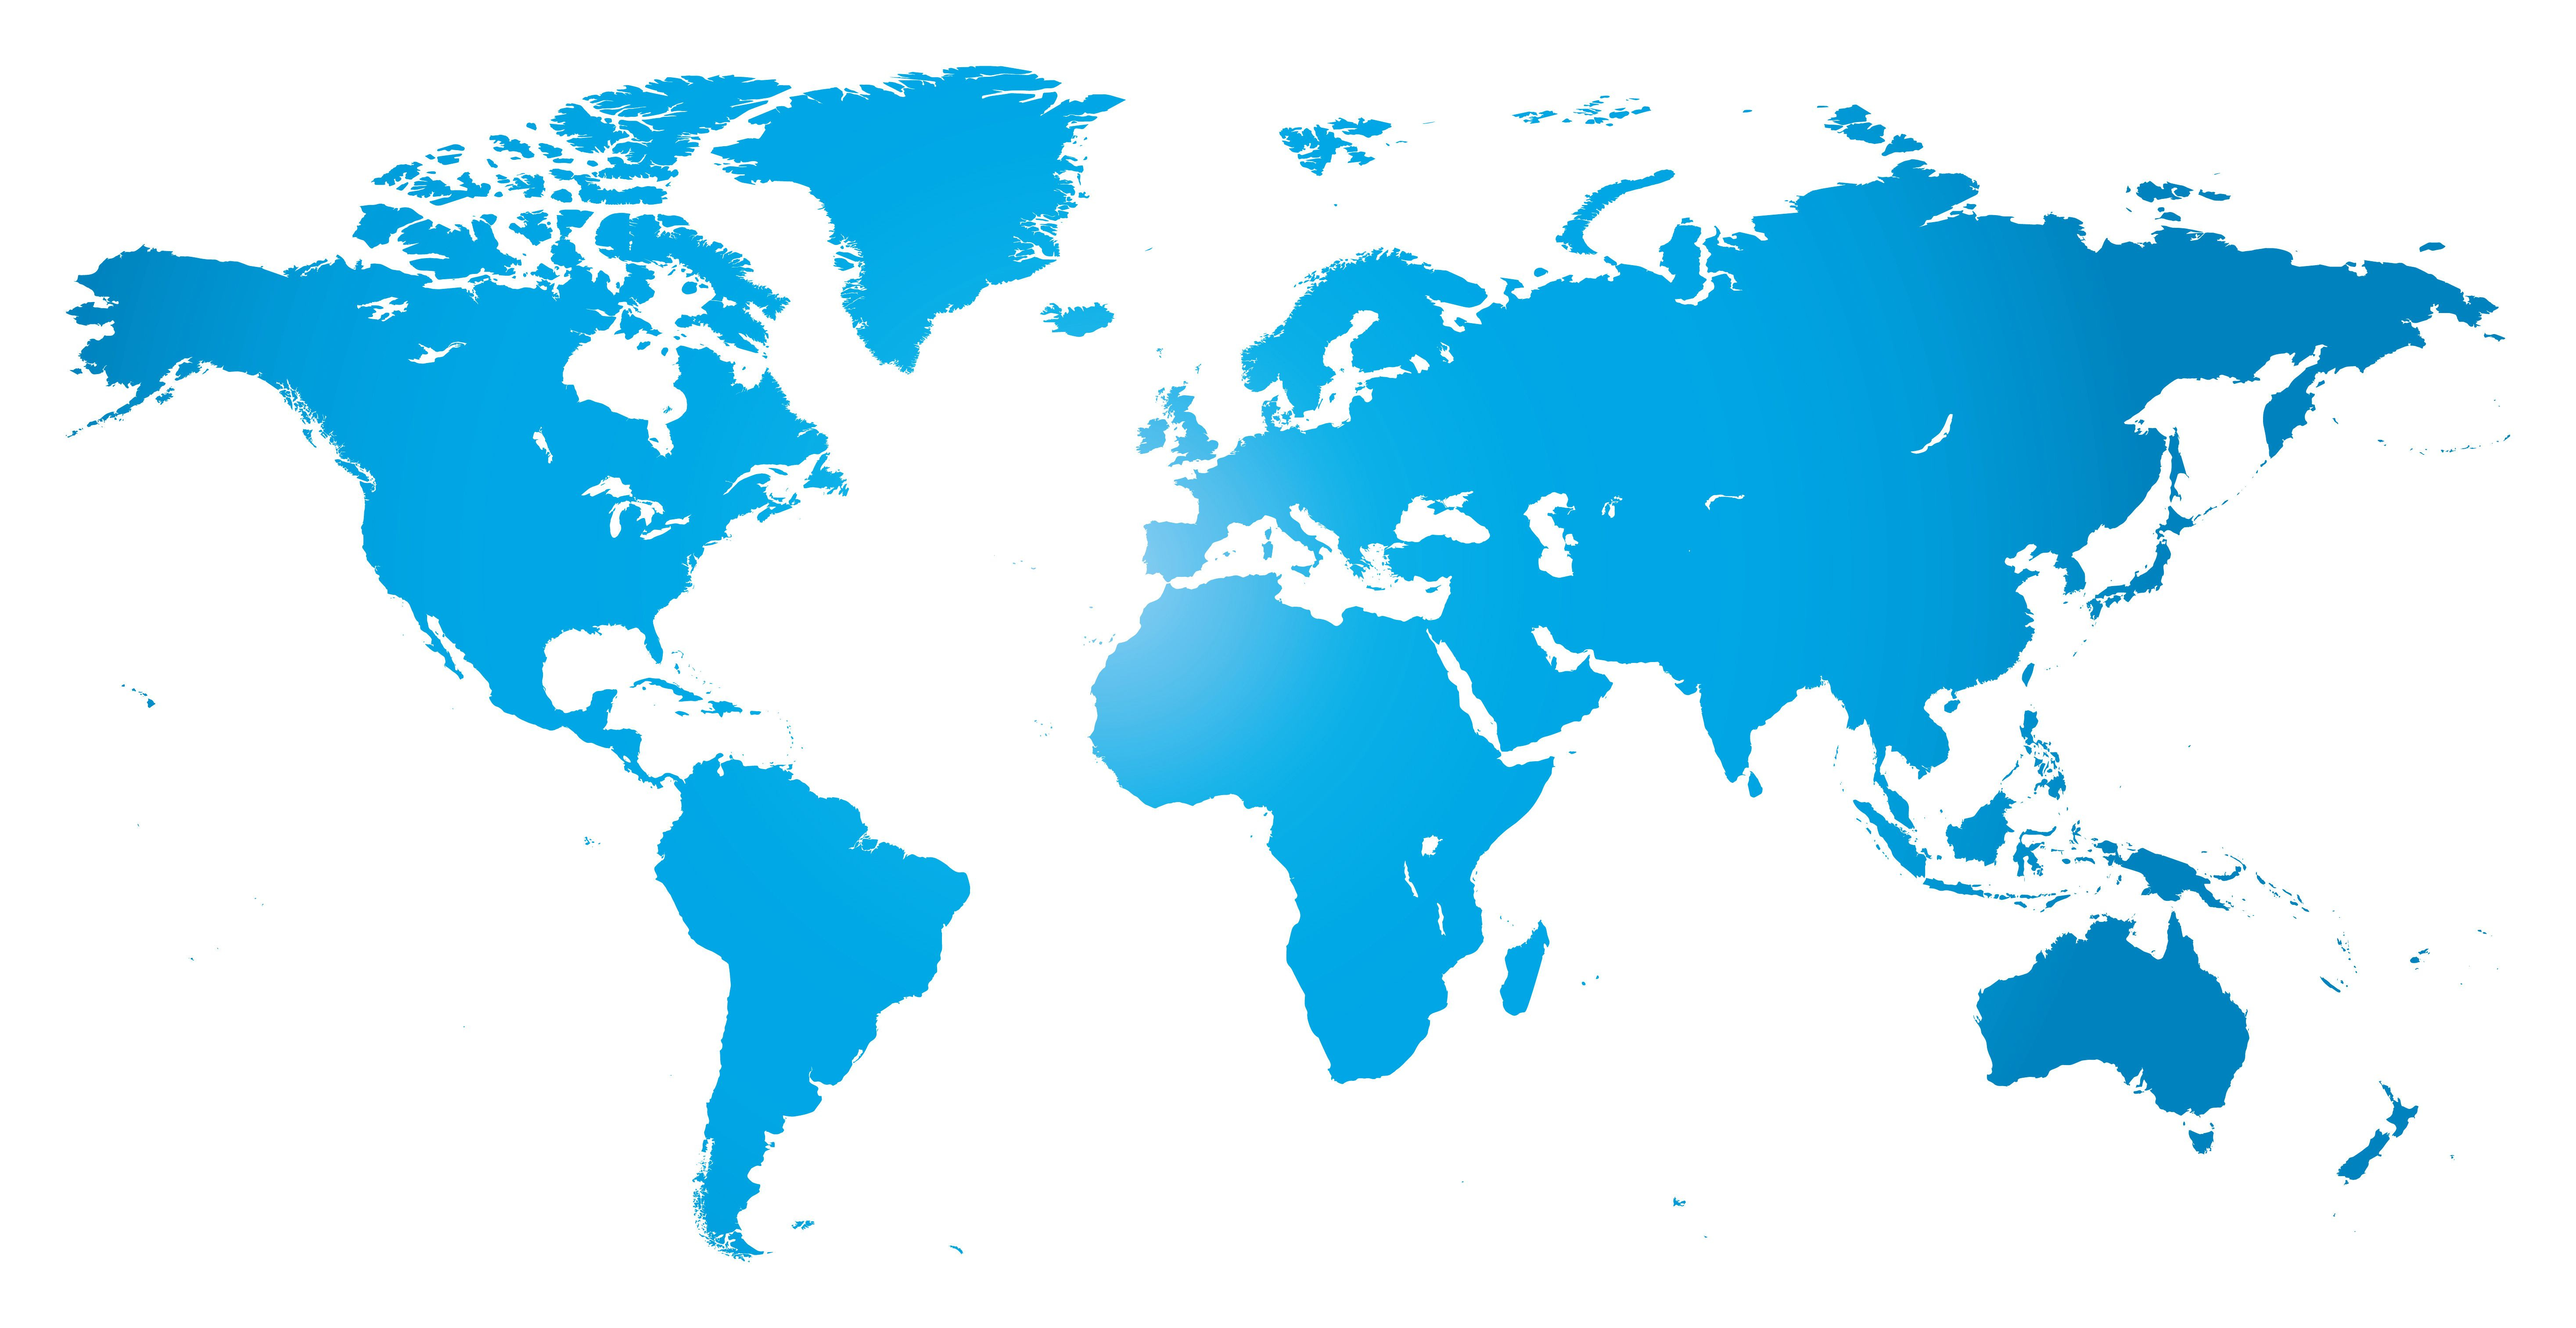 World map outline blue google search craft ideas pinterest world map outline blue google search gumiabroncs Choice Image